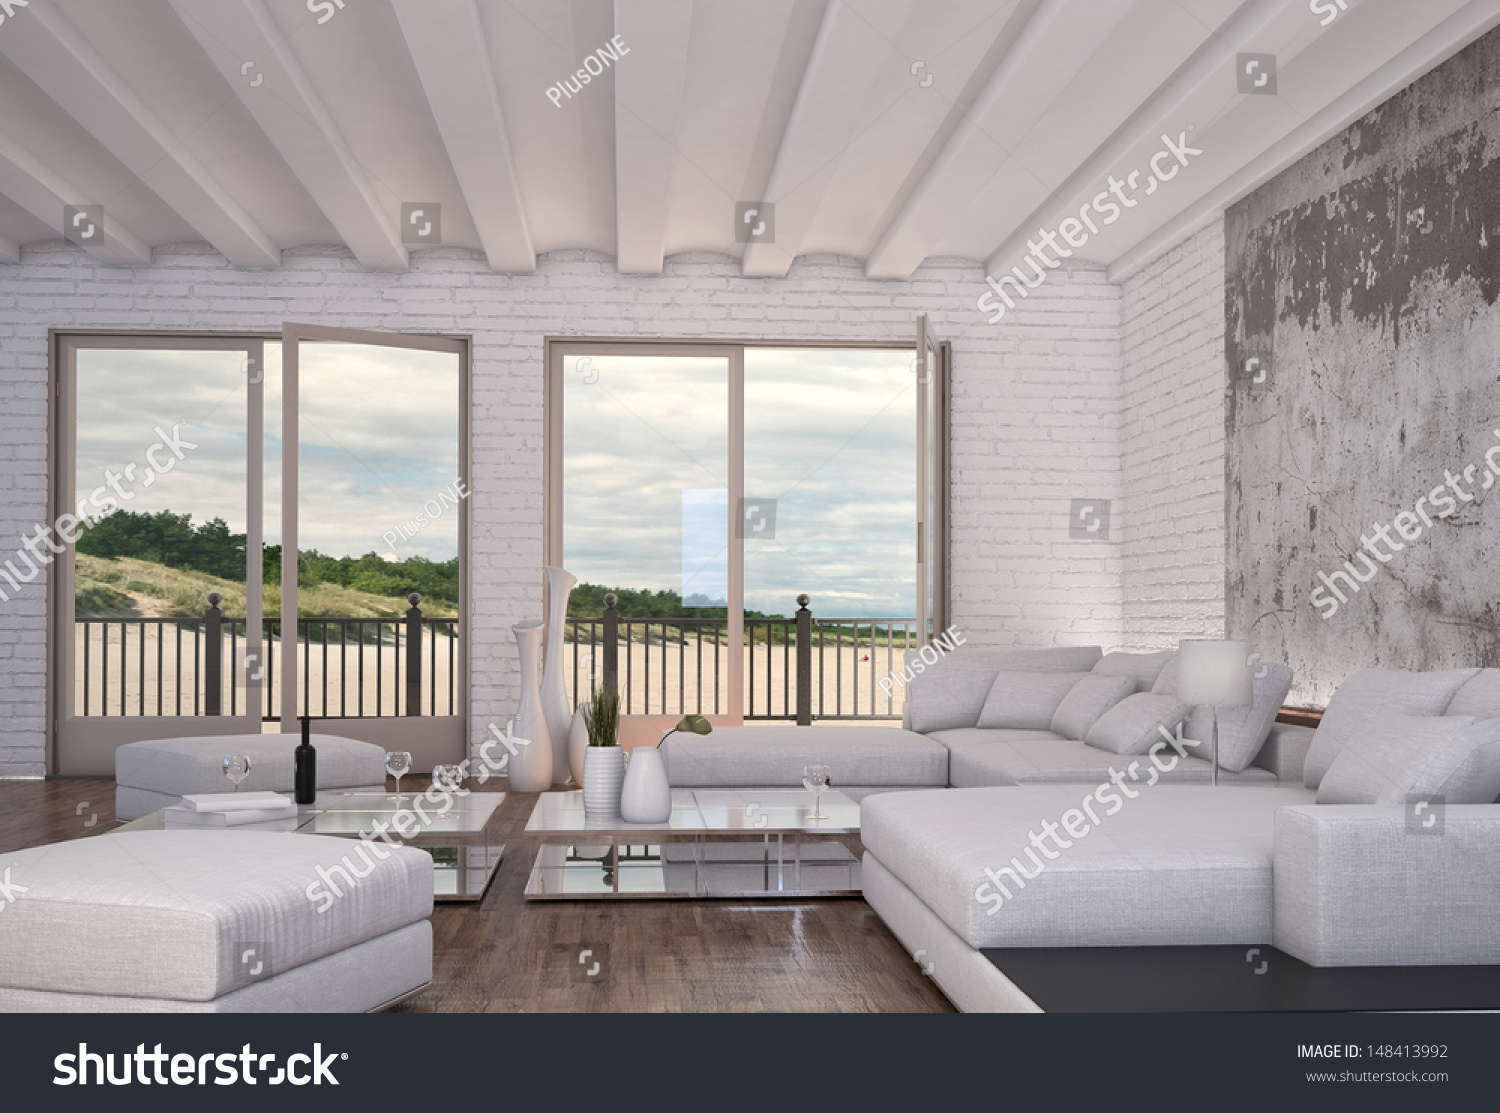 Modern loft living room - Modern Loft Living Room With White Couch And Seascape View